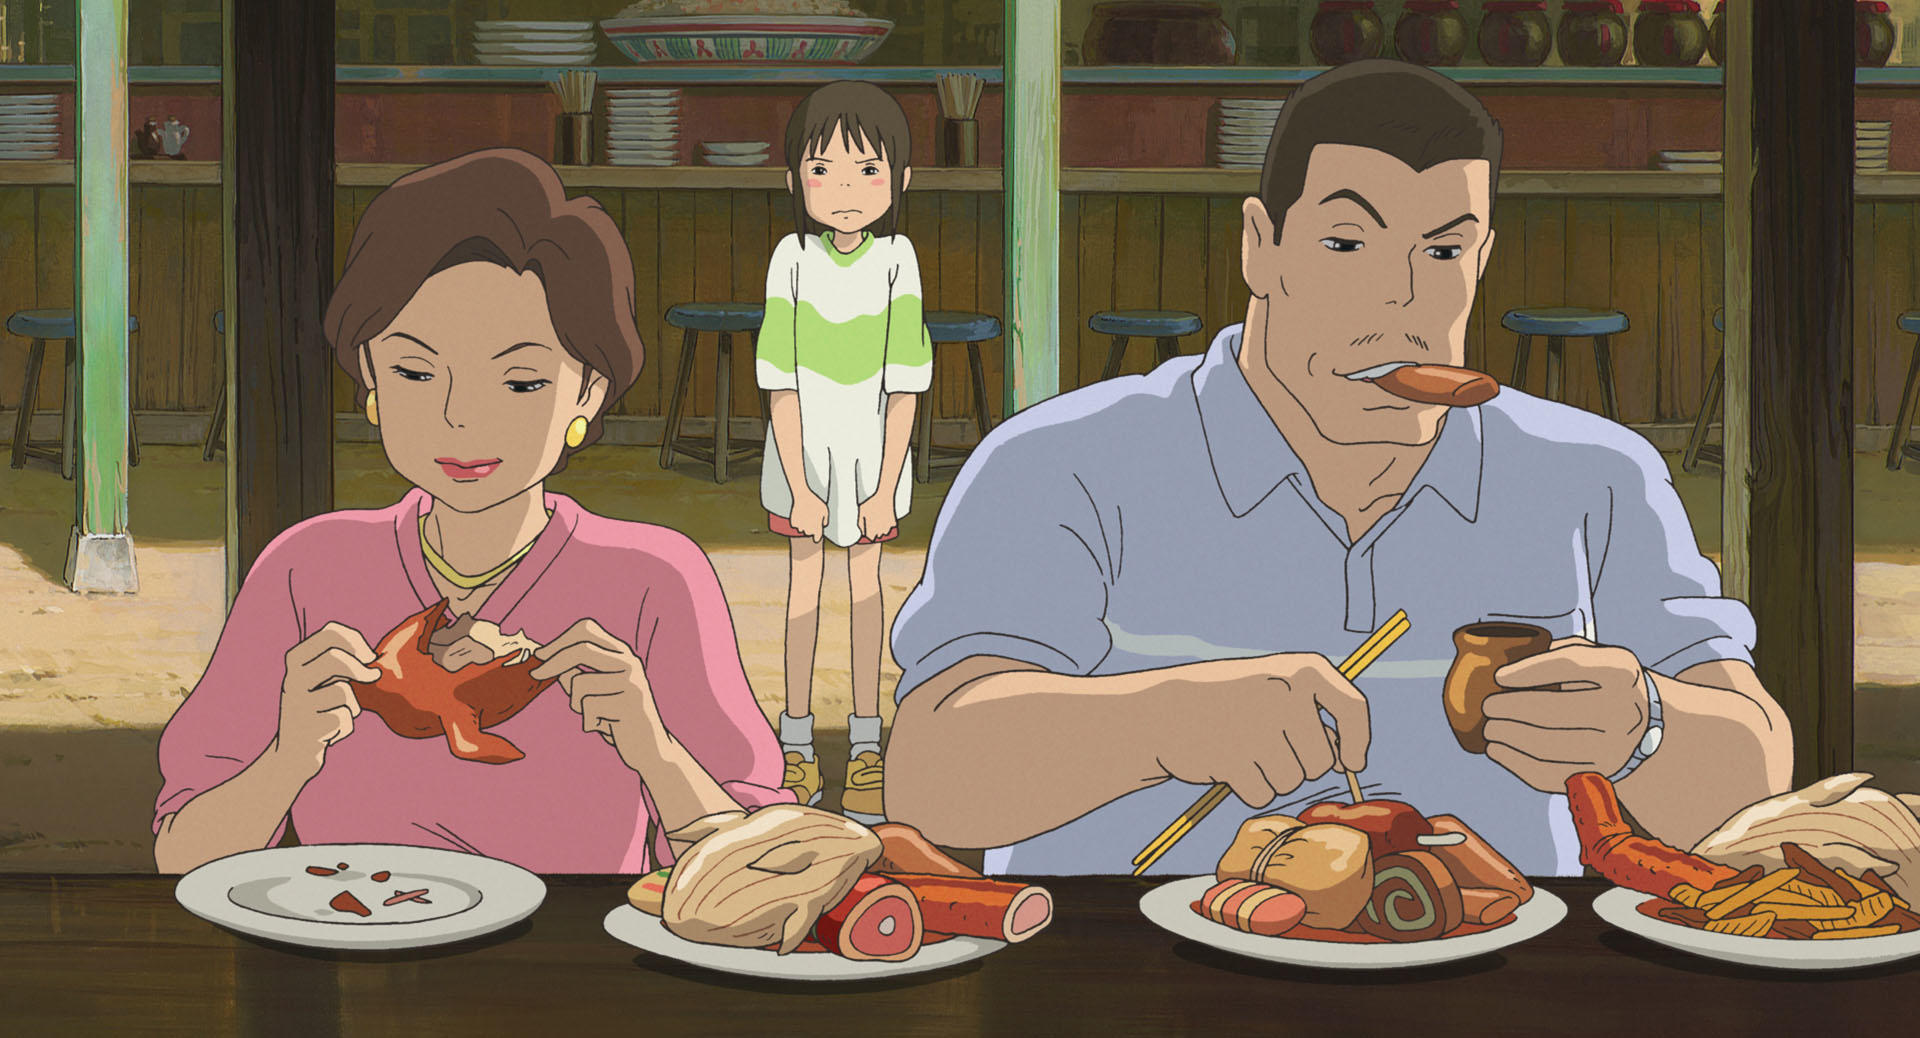 Studio Ghibli Animator Reveals The Secret Food Eaten By Chihiro S Parents In Spirited Away Soranews24 Japan News